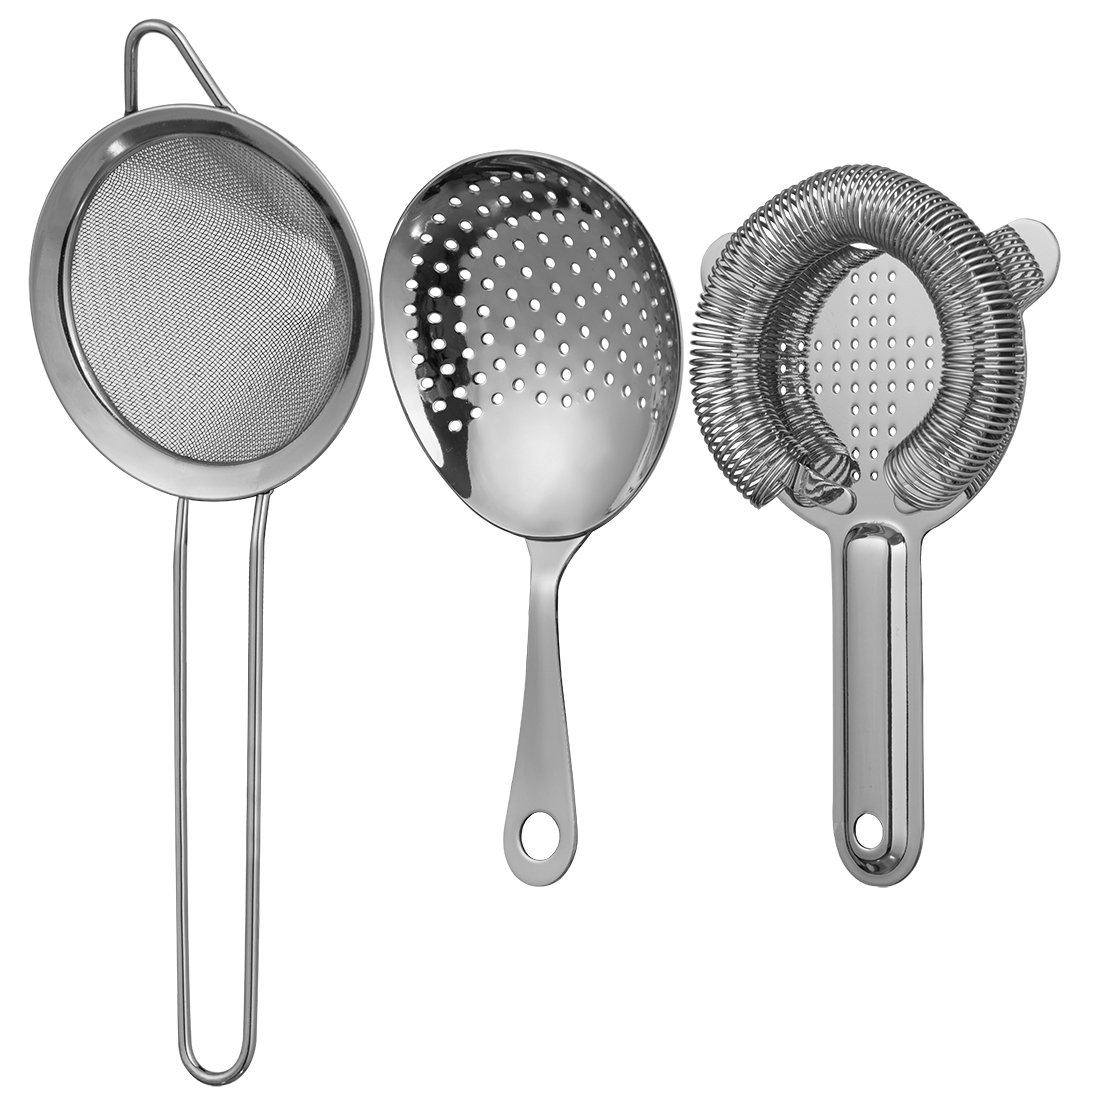 Cocktail Strainer Set for Professional Bartenders and Mixologists – Stainless Steel Hawthorne Strainer, Julep Strainer and Fine Mesh Conical Strainer by ALOONO (Image #1)